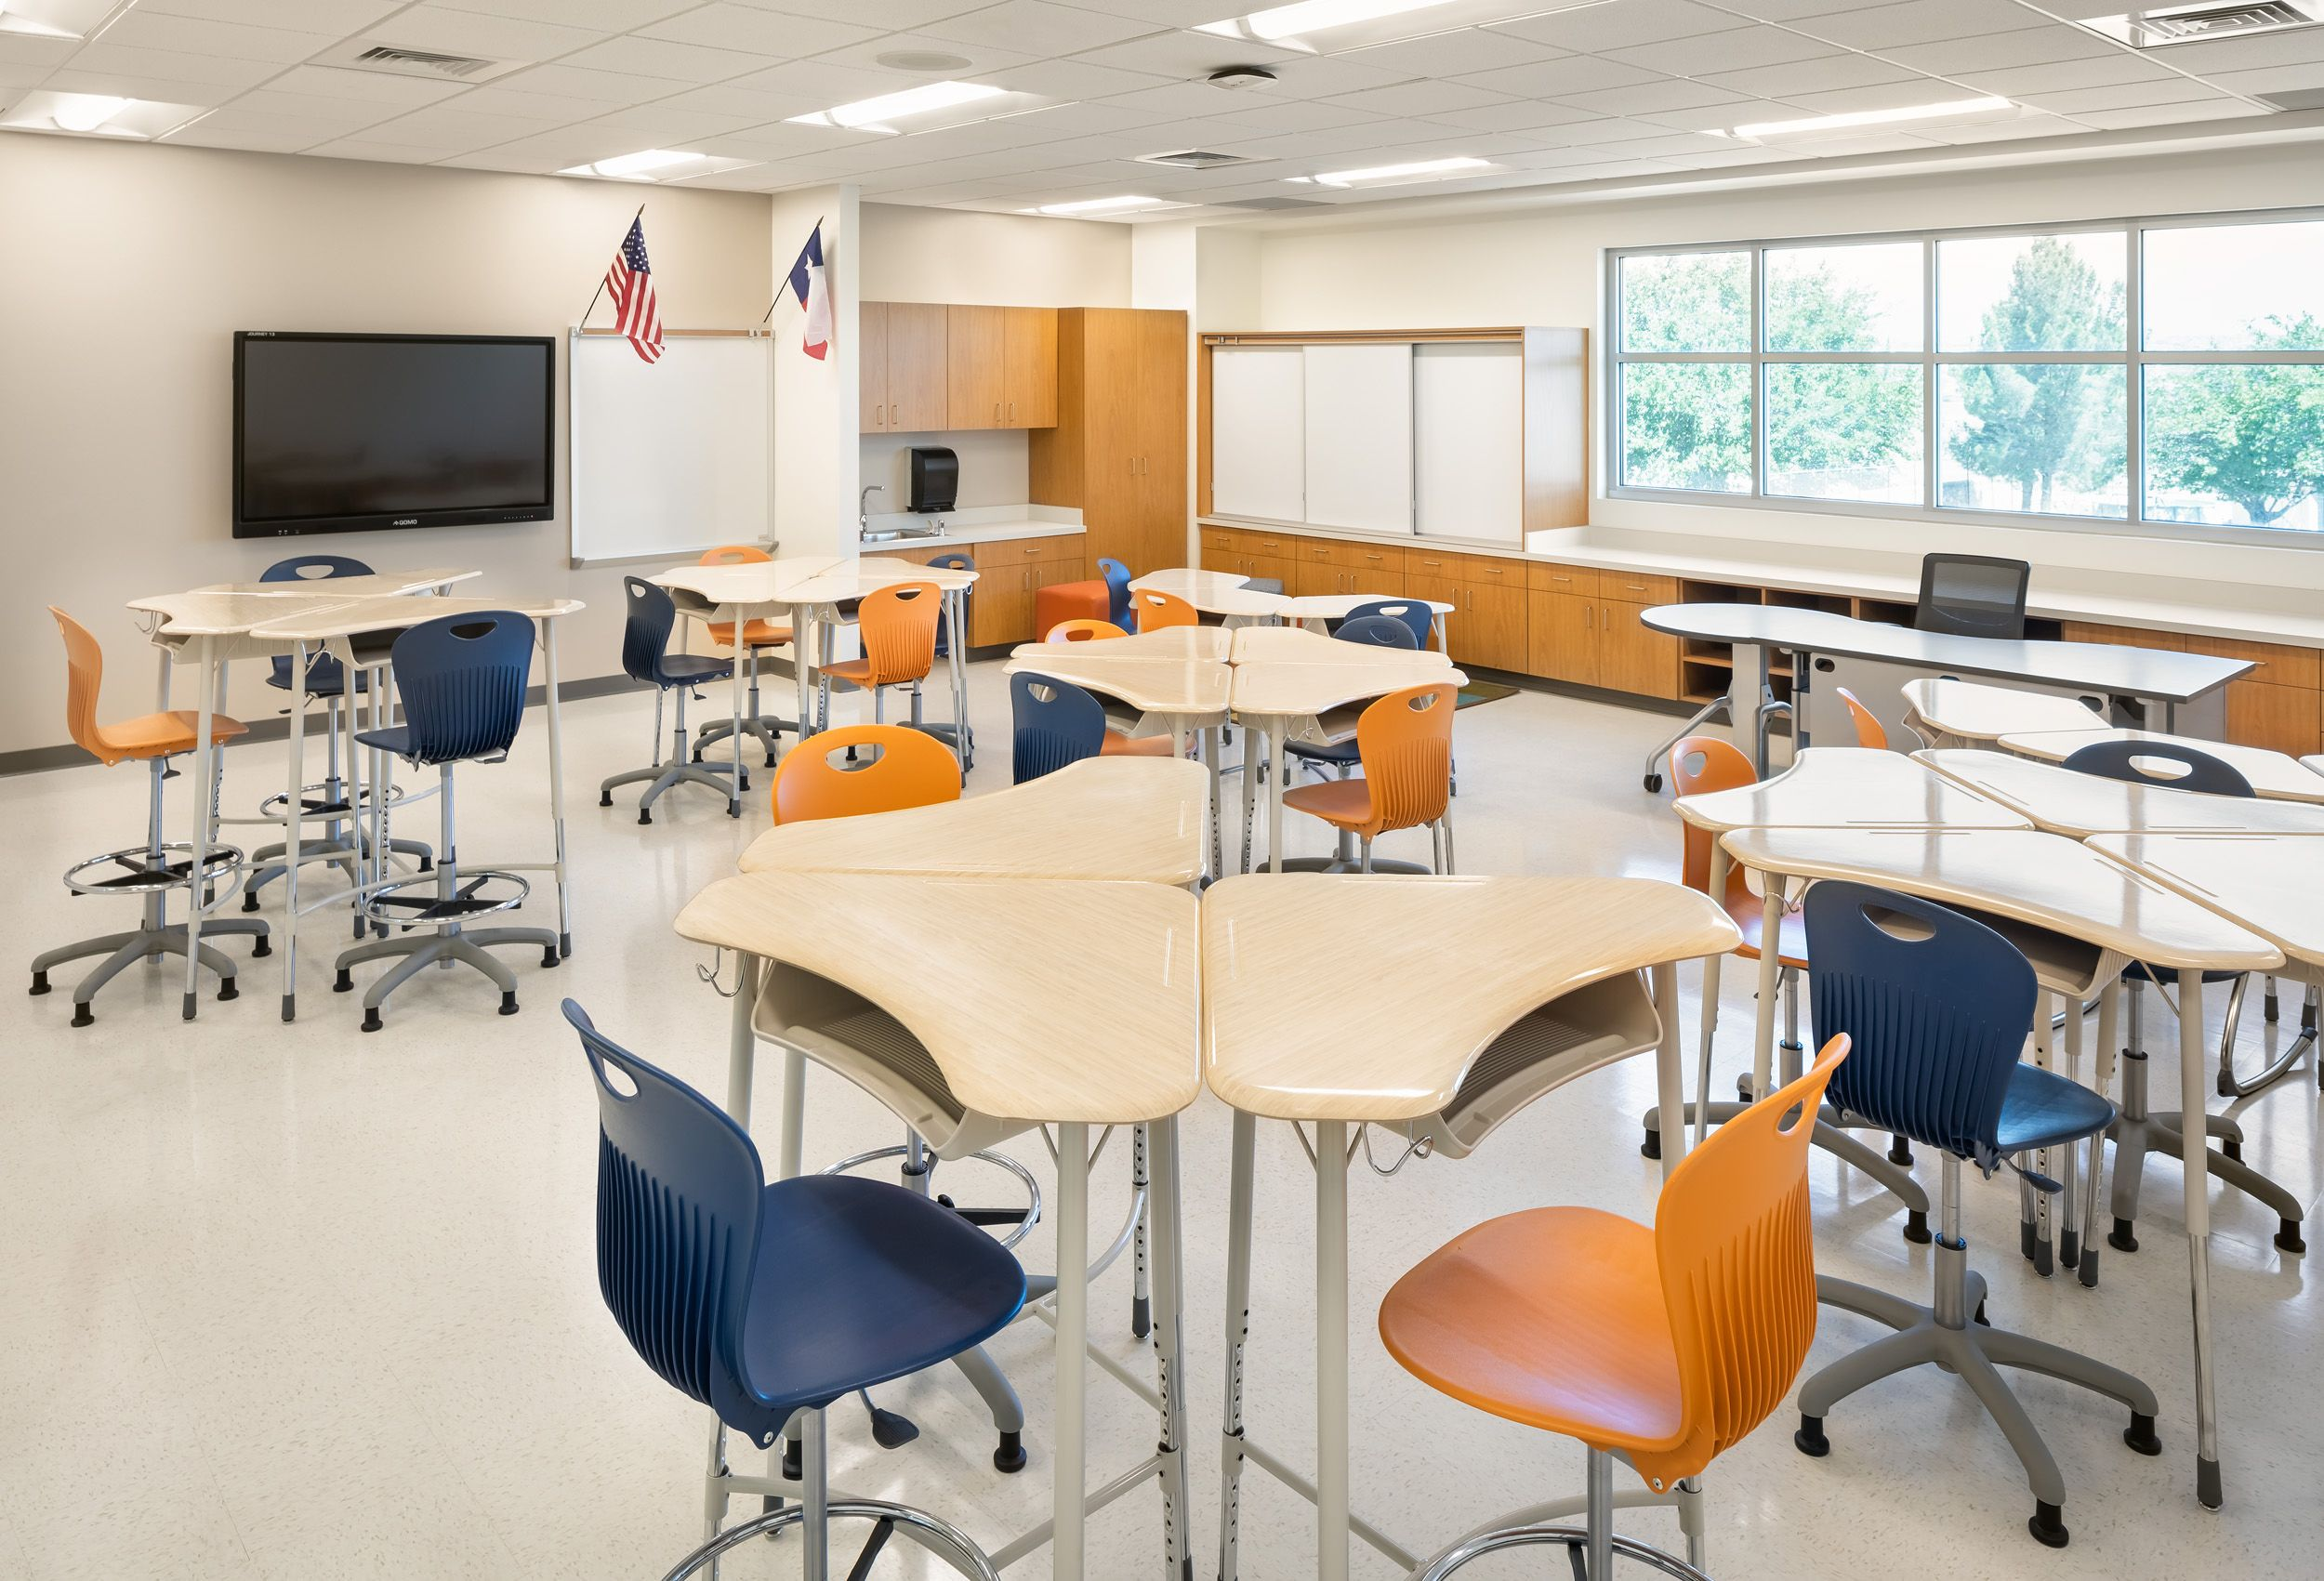 Flexible Classroom With Collaborative Desks And Chairs Classroom